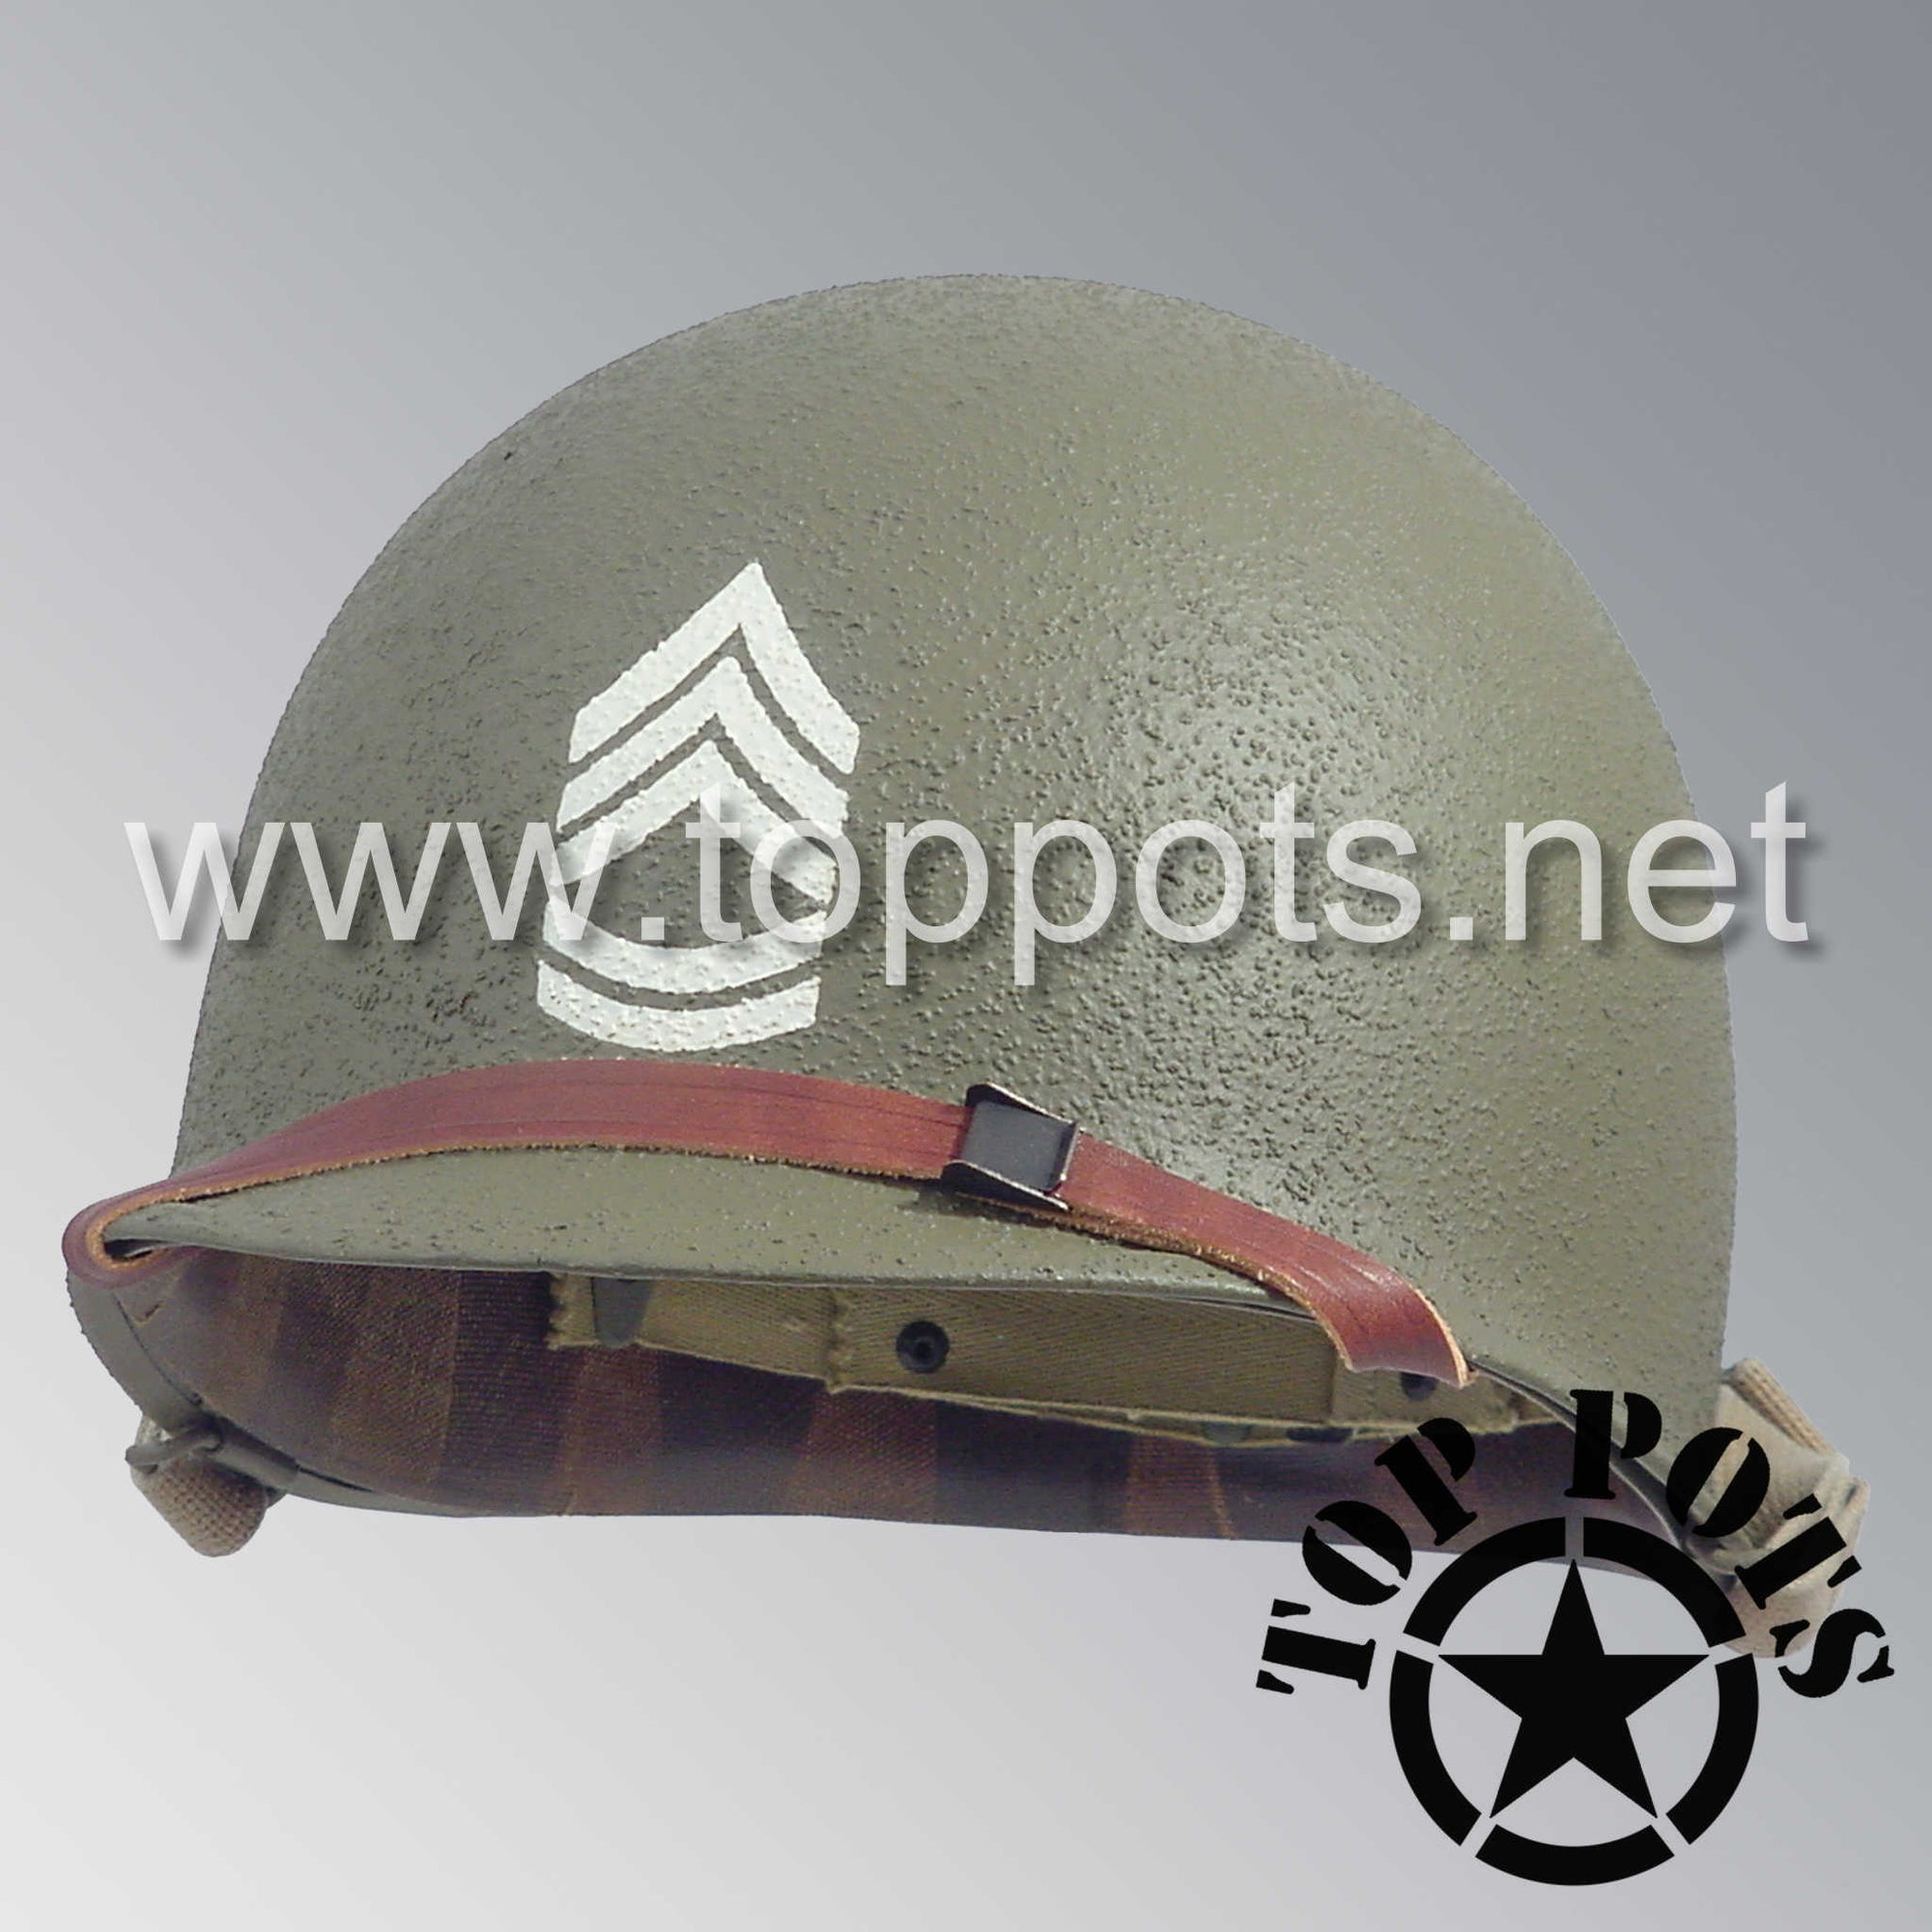 Image 1 of WWII US Army Restored Original M1 Infantry Helmet Swivel Bale Shell and Liner with Technical Sergeant Grade II NCO Emblem